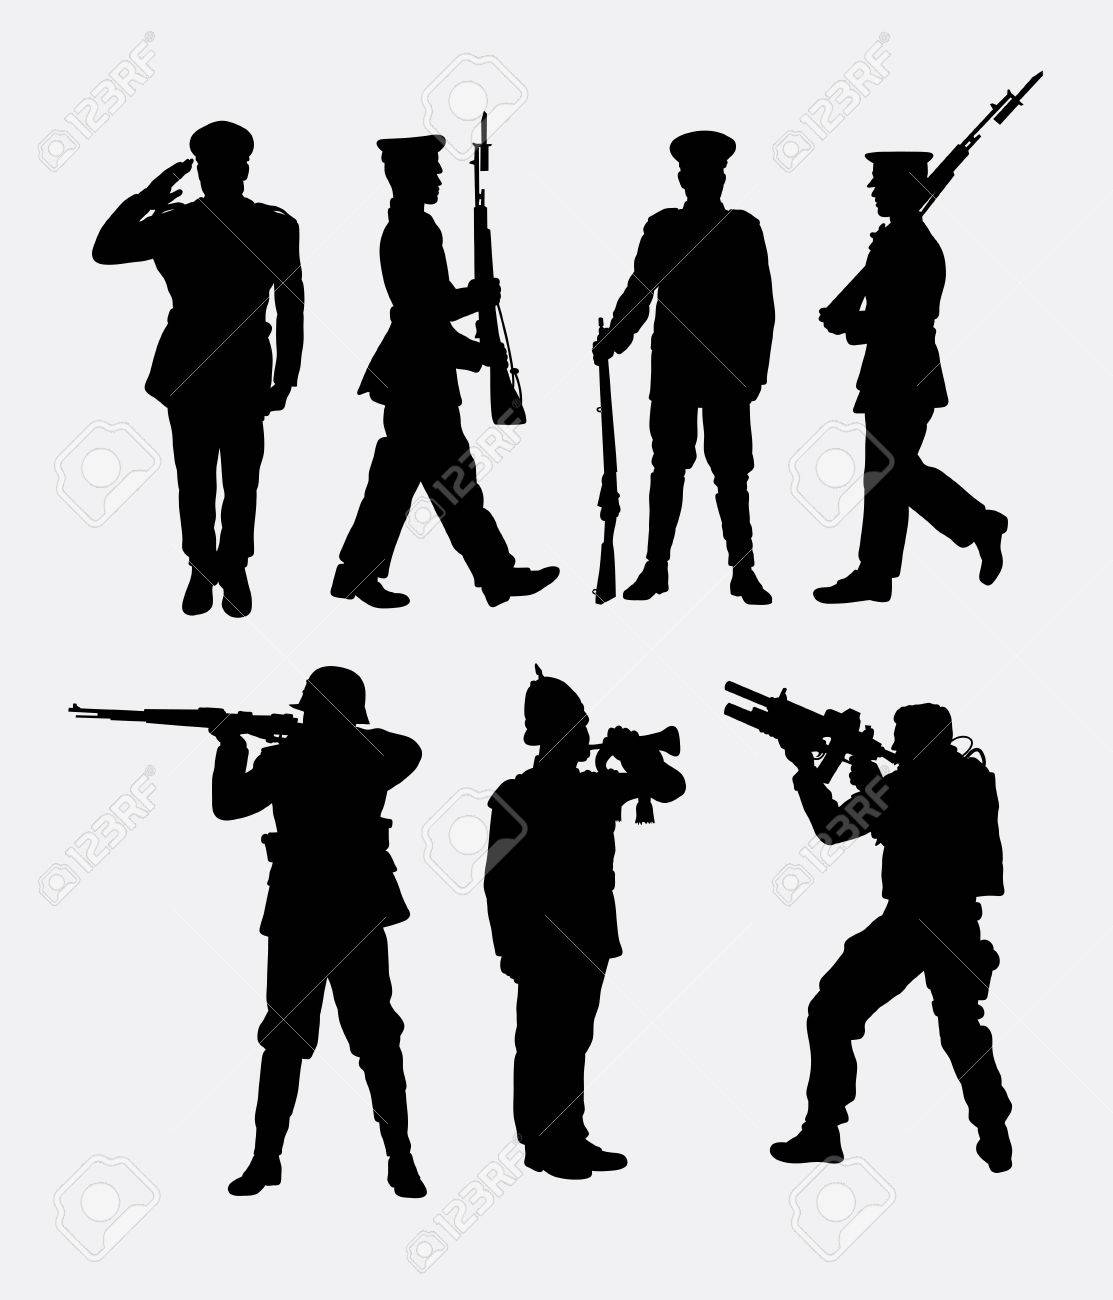 Soldier army and police 1 good use for symbol web icon mascot